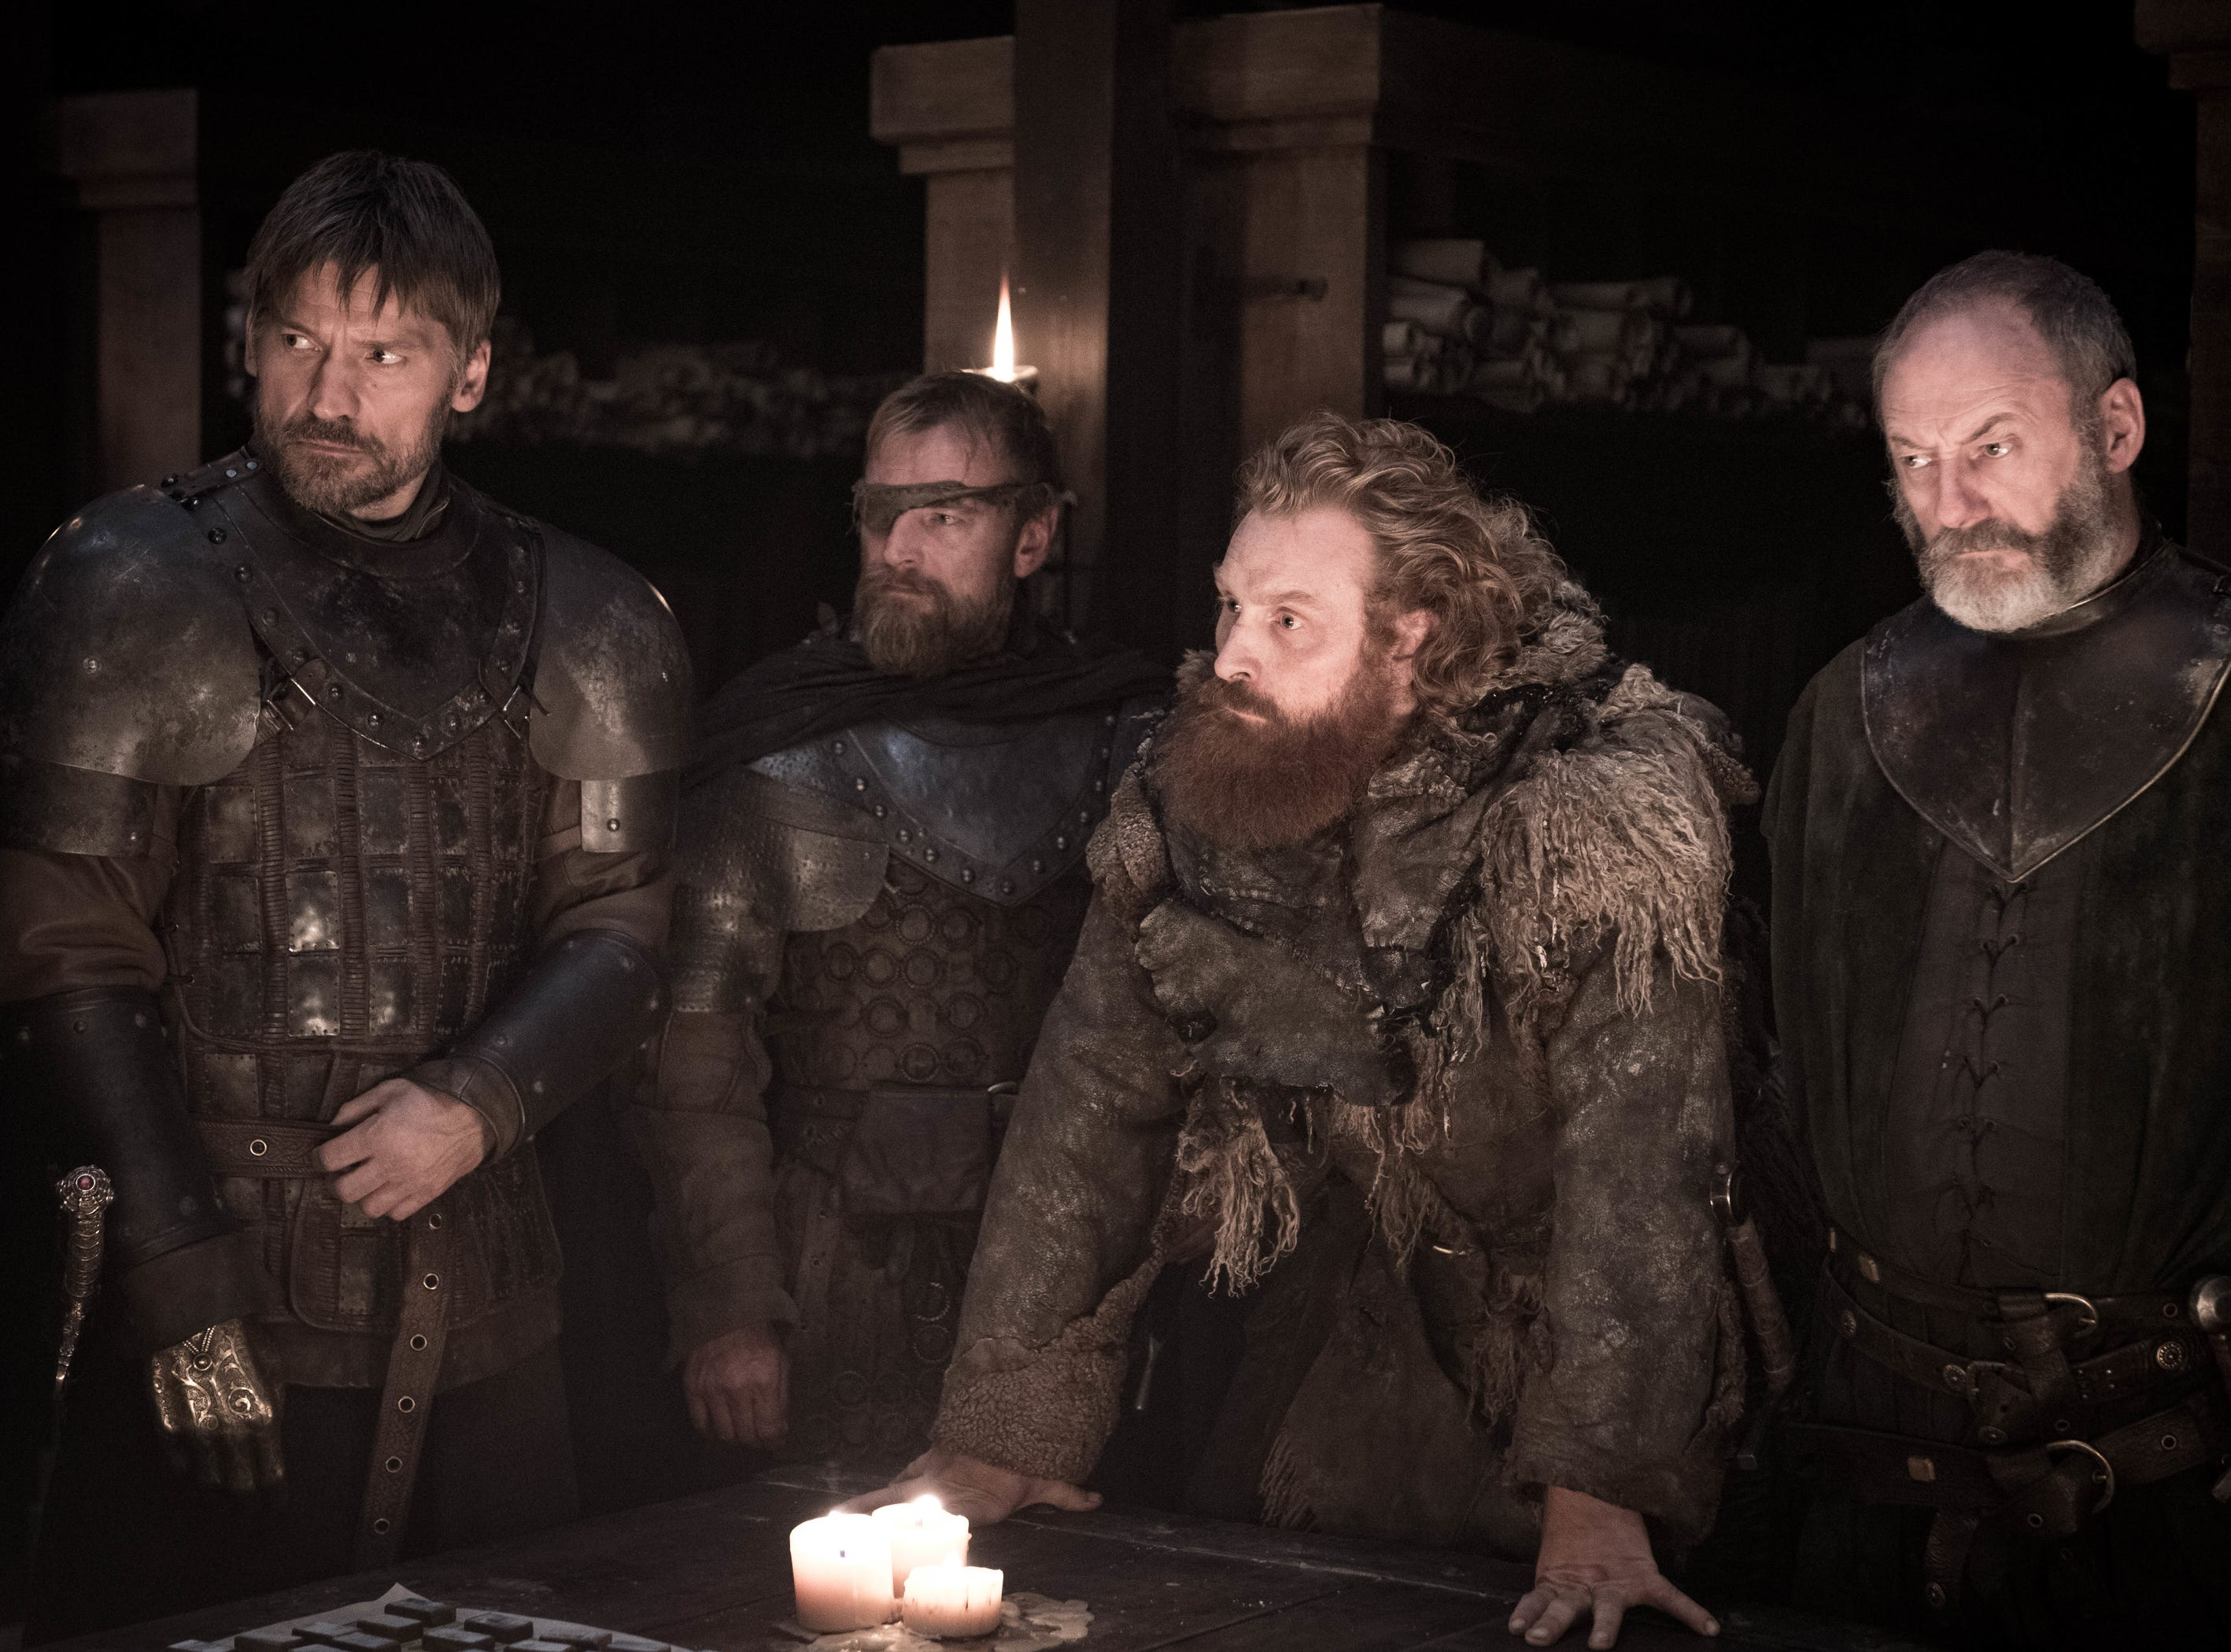 Nikolaj Coster-Waldau as Jaime Lannister, left, Richard Dormer as Beric Dondarrion, Kristofer Hivju as Tormund and Liam Cunningham as Davos Seaworth on 'Game of Thrones.'